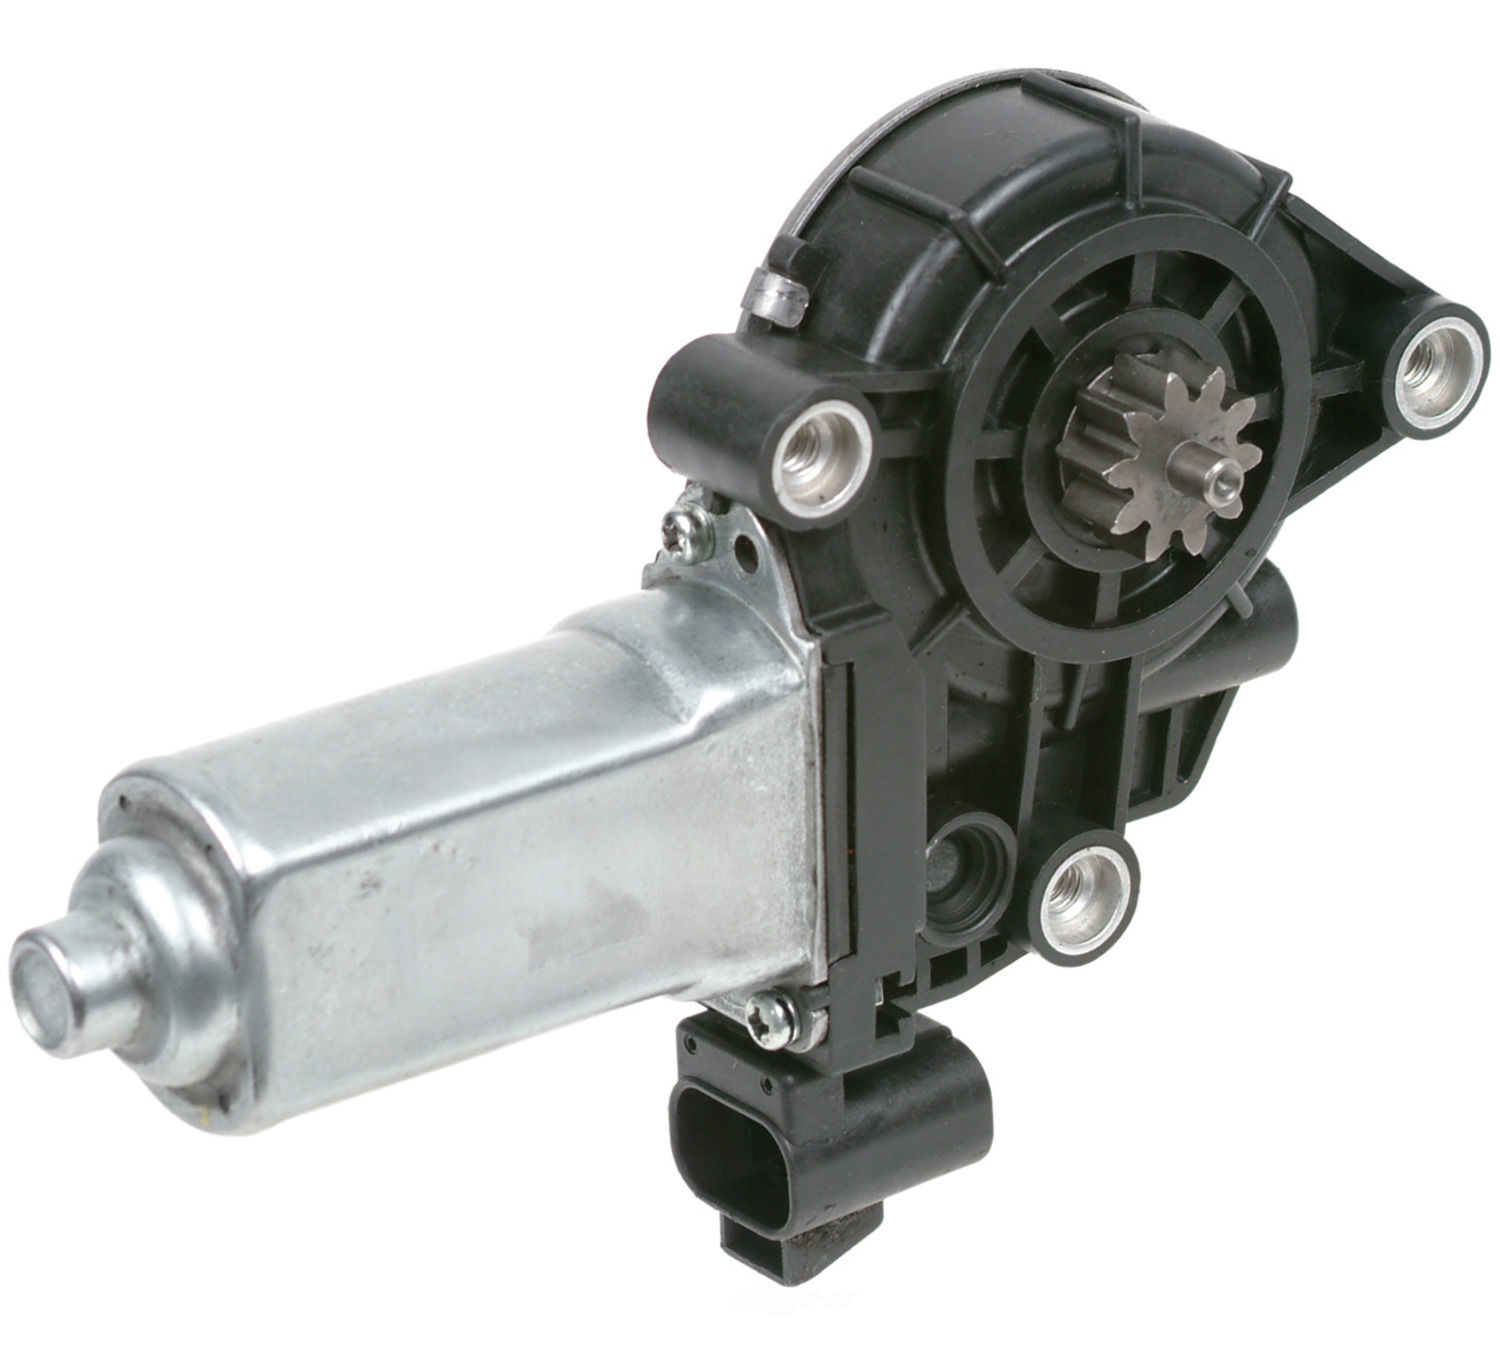 Reman a 1 cardone window lift motor fits 2003 2007 saturn for Saturn window motor replacement